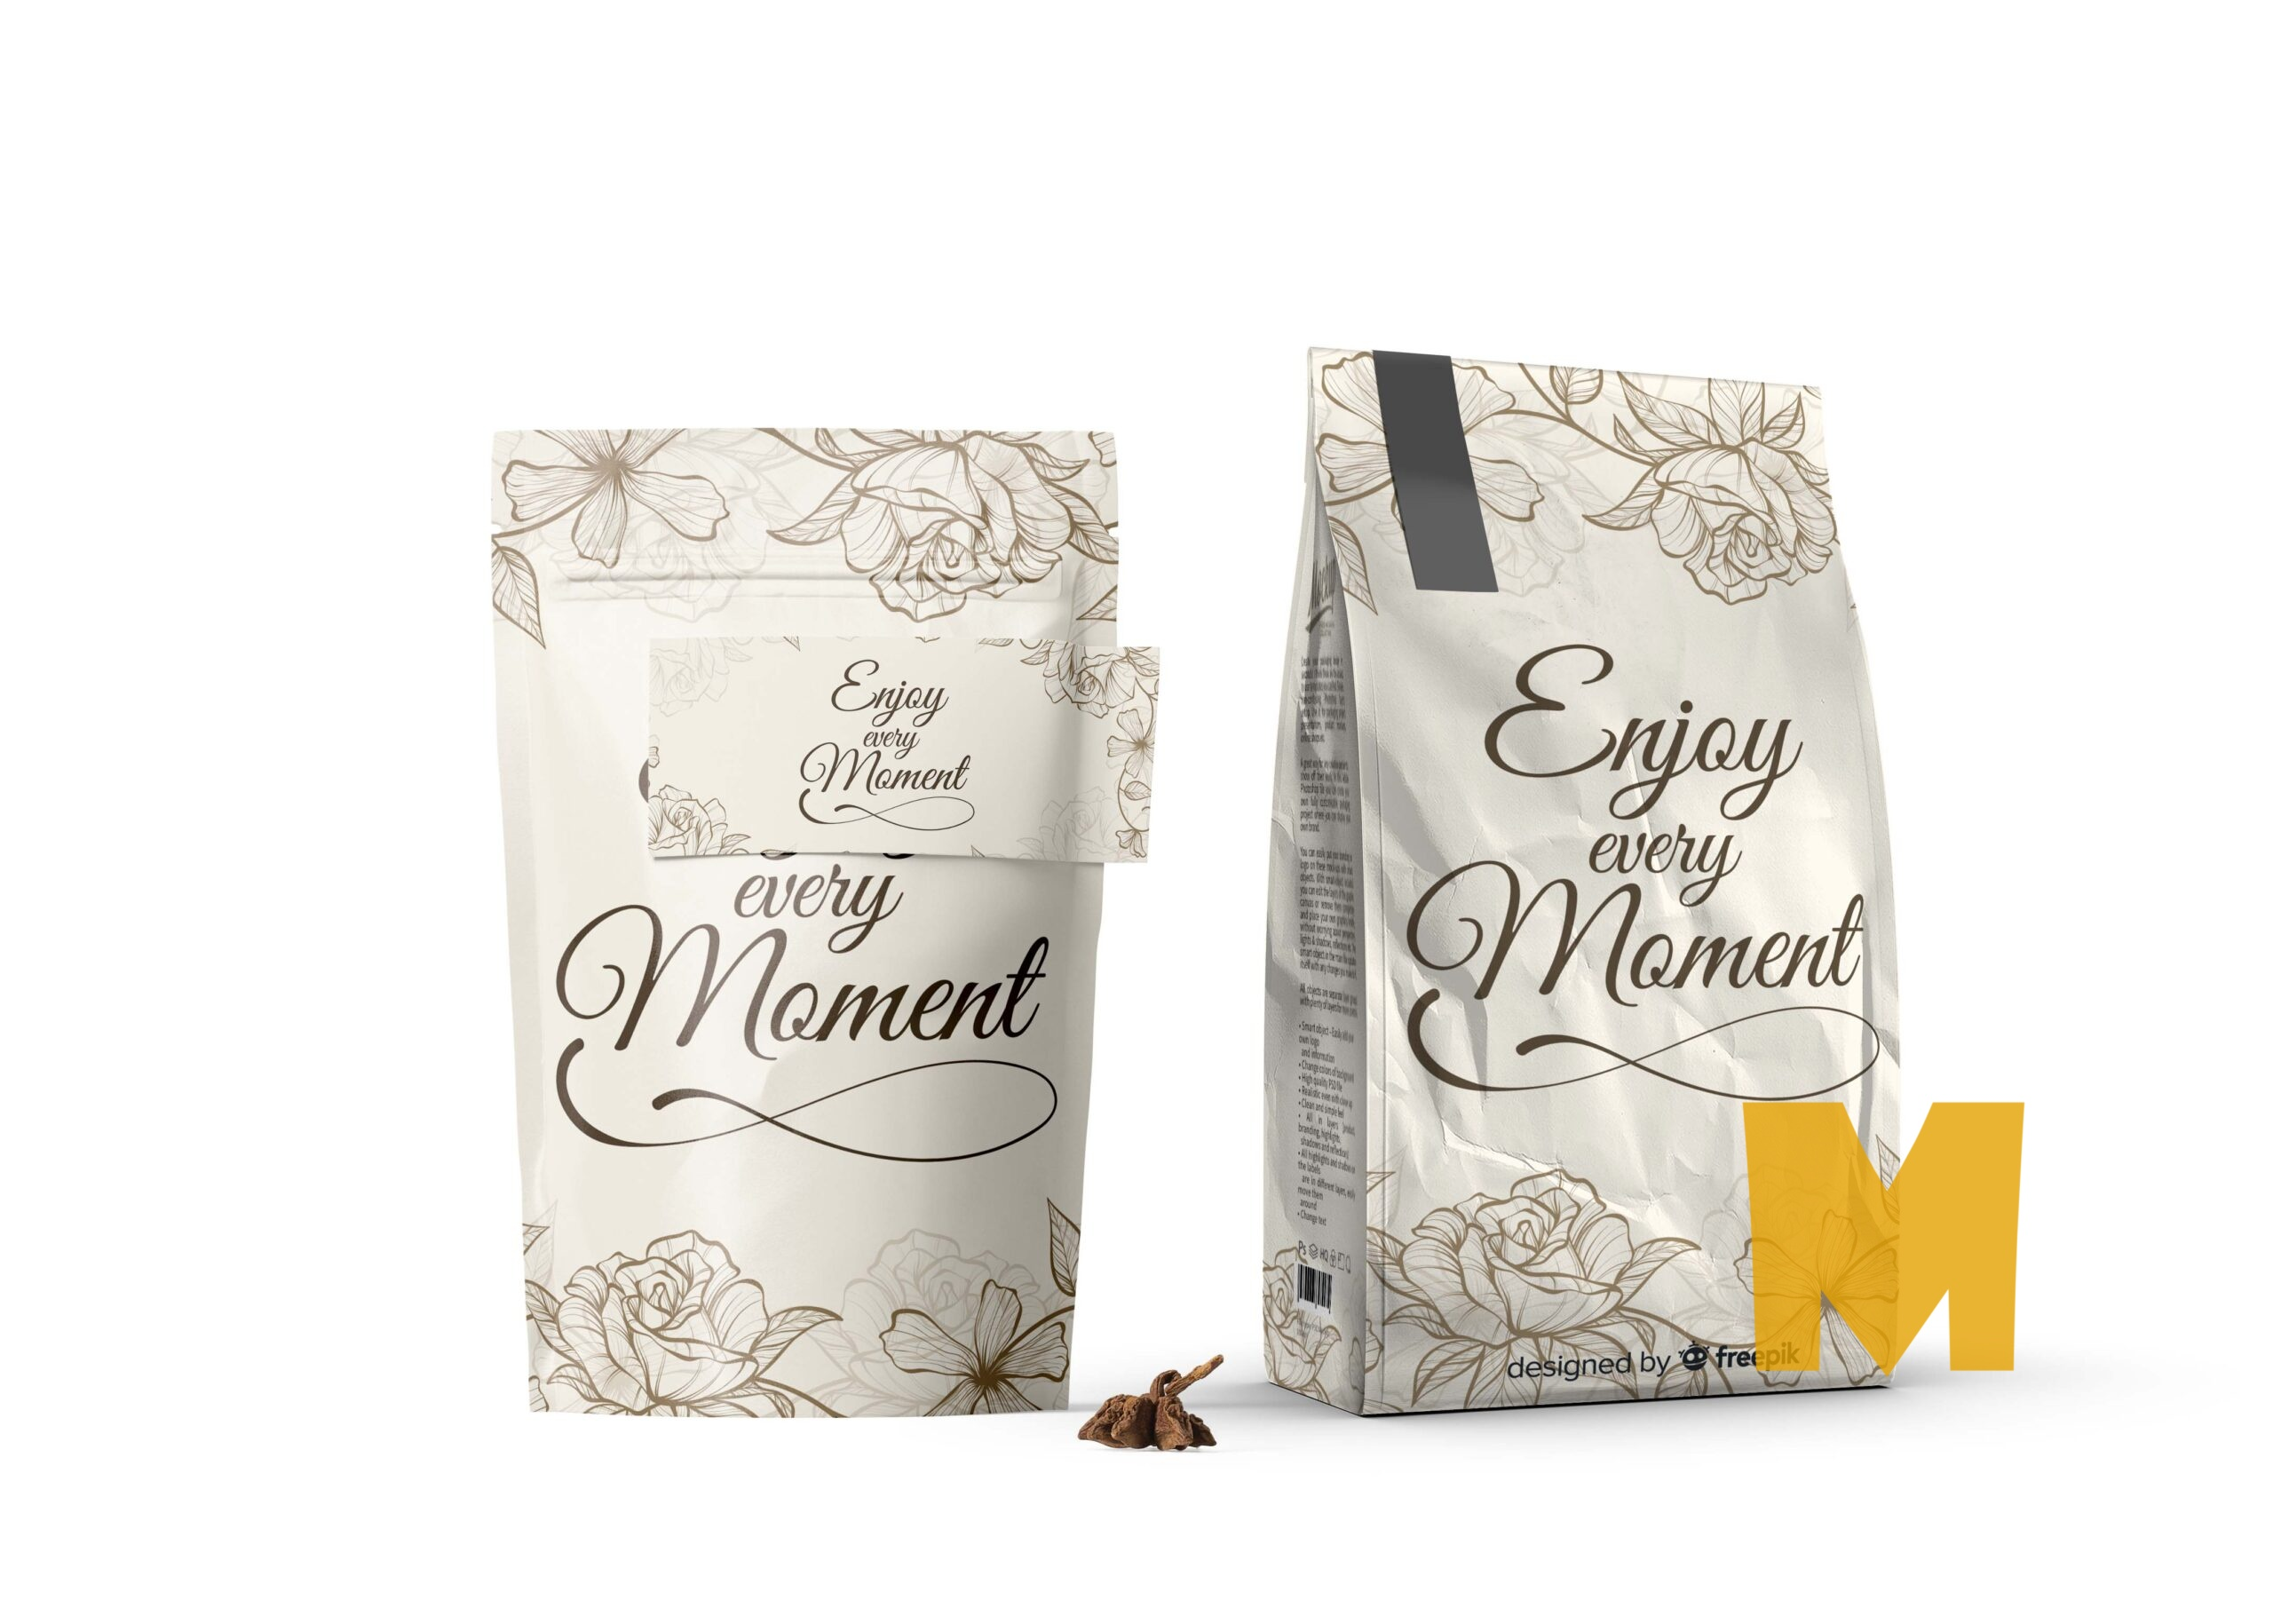 Enjoy Moment Stand Packet Mockup